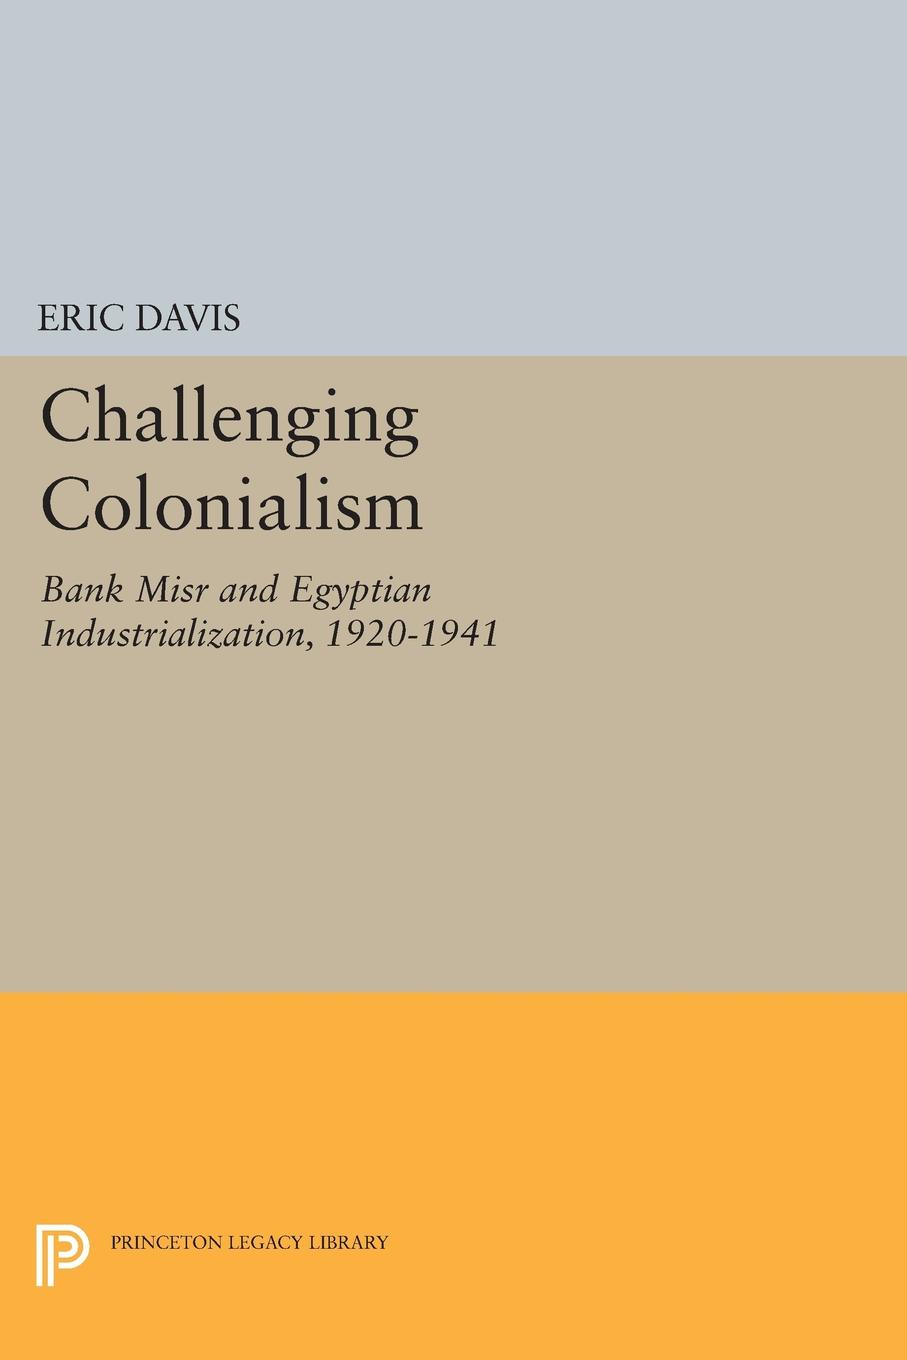 Challenging Colonialism. Bank Misr and Egyptian Industrialization, 1920-1941 Eric Davis challenges classic theories of dependency and imperialism...